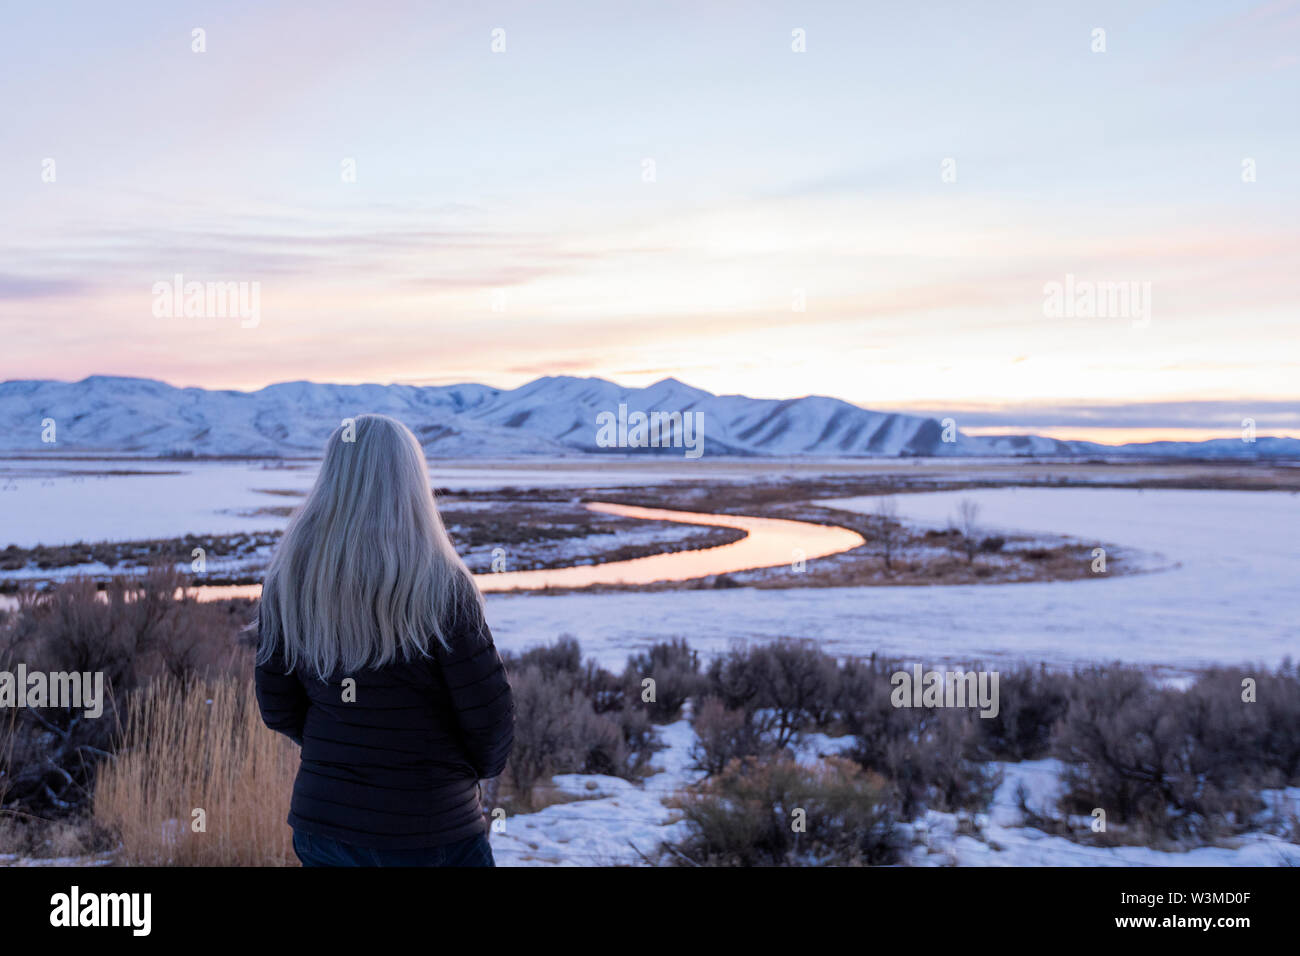 Mature woman by river during winter in Picabo, Idaho - Stock Image